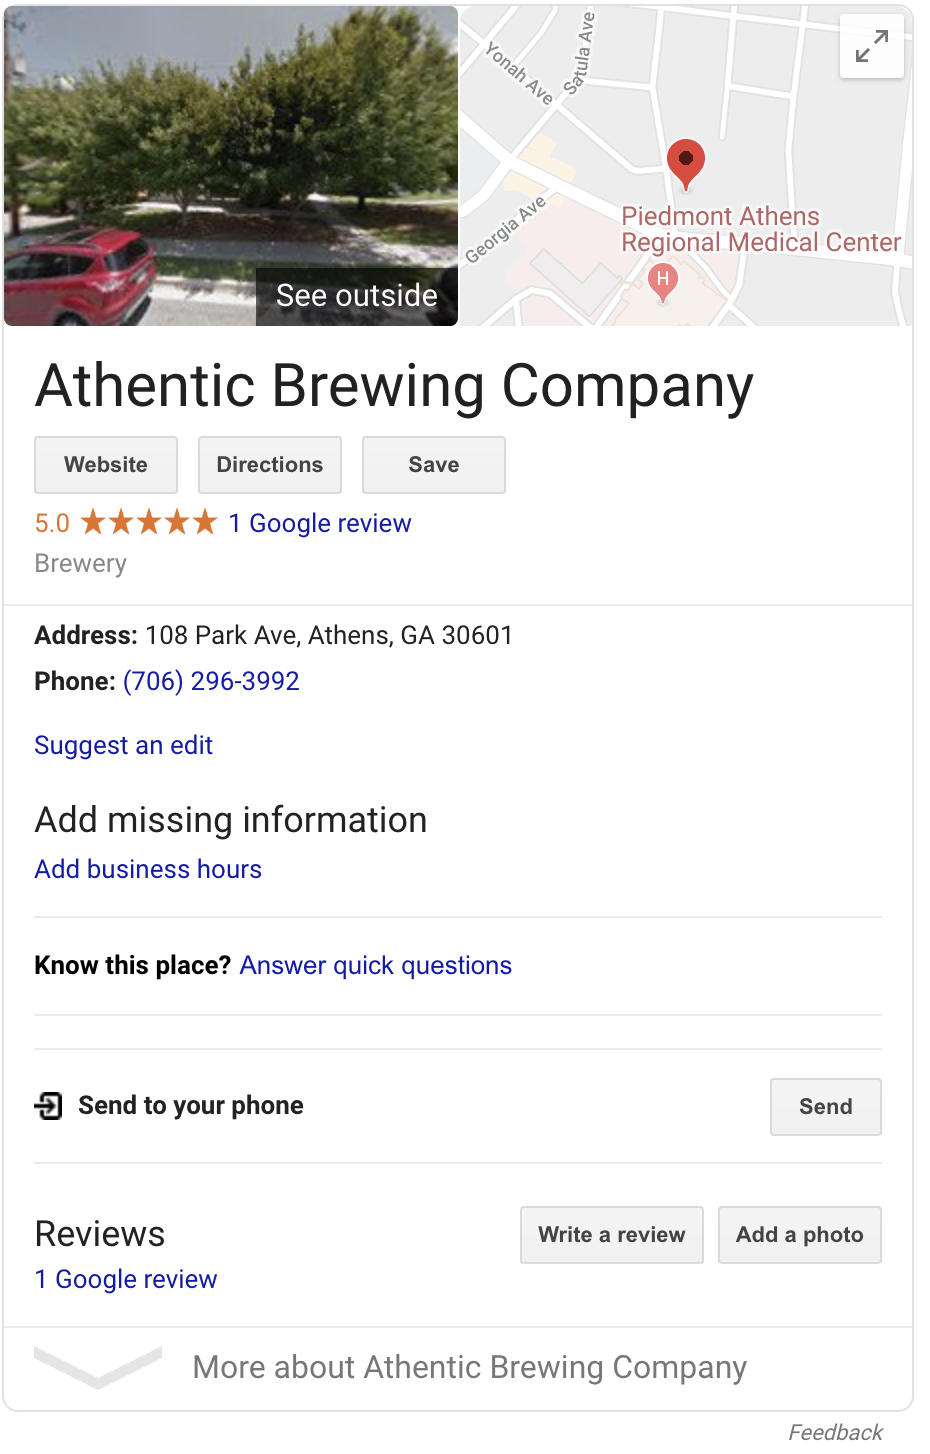 Athentic Brewing Co. Google listing